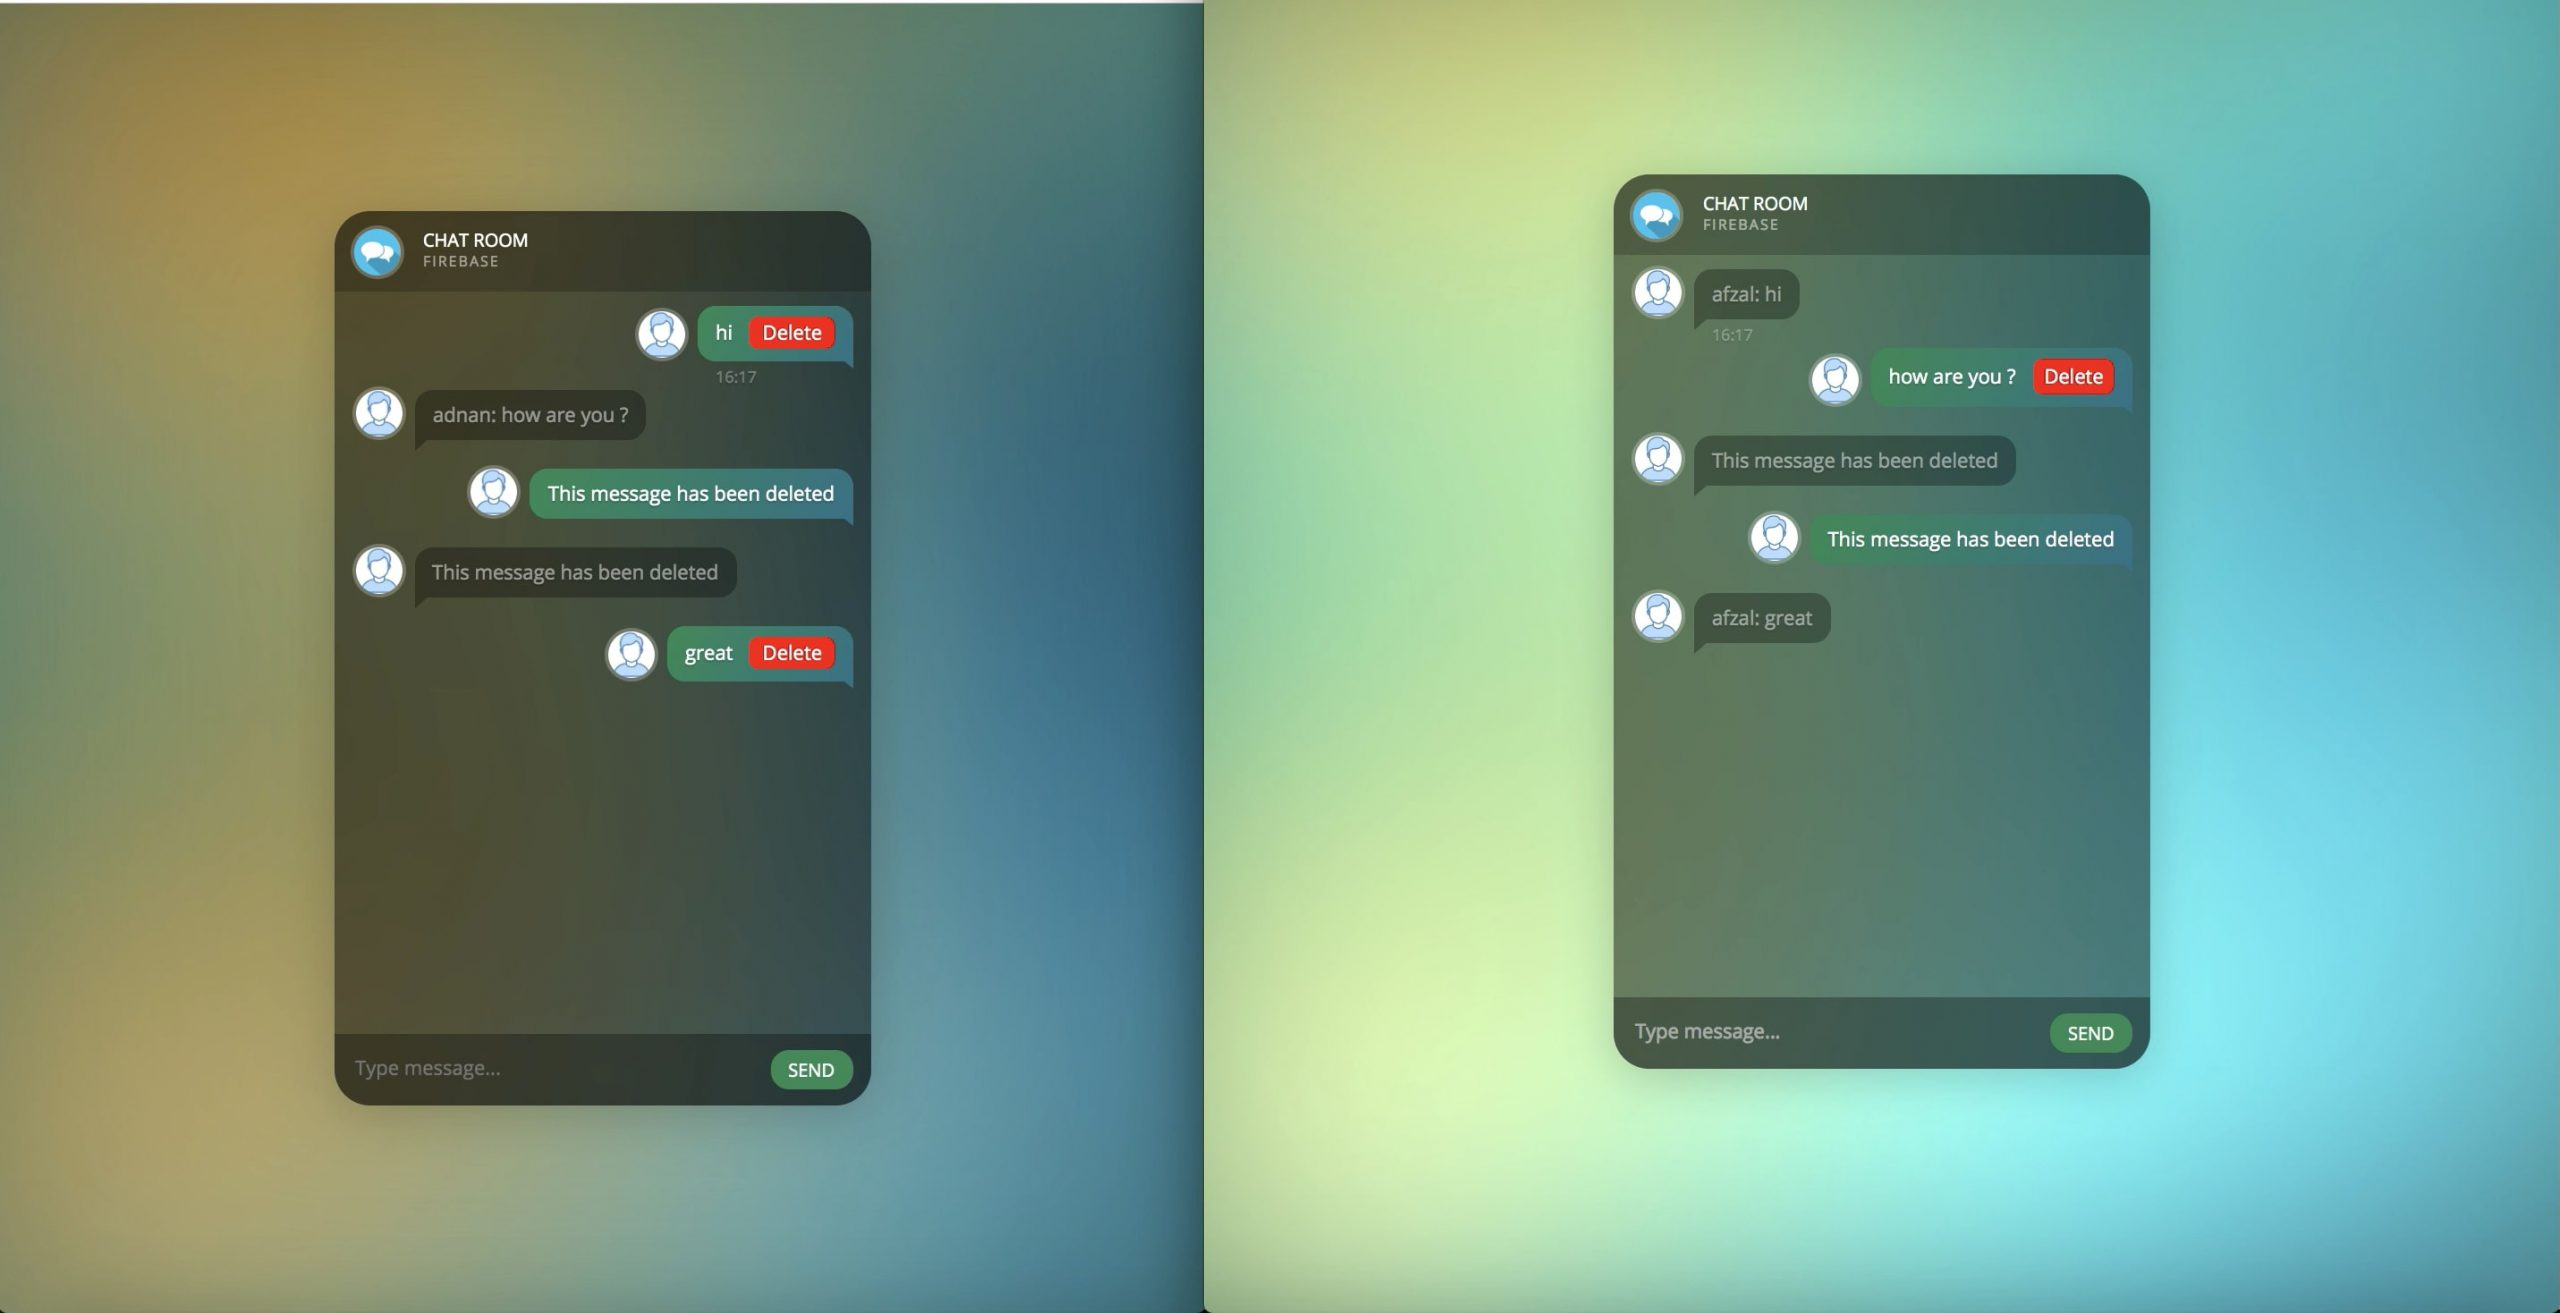 Realtime Web-based Chat in Firebase